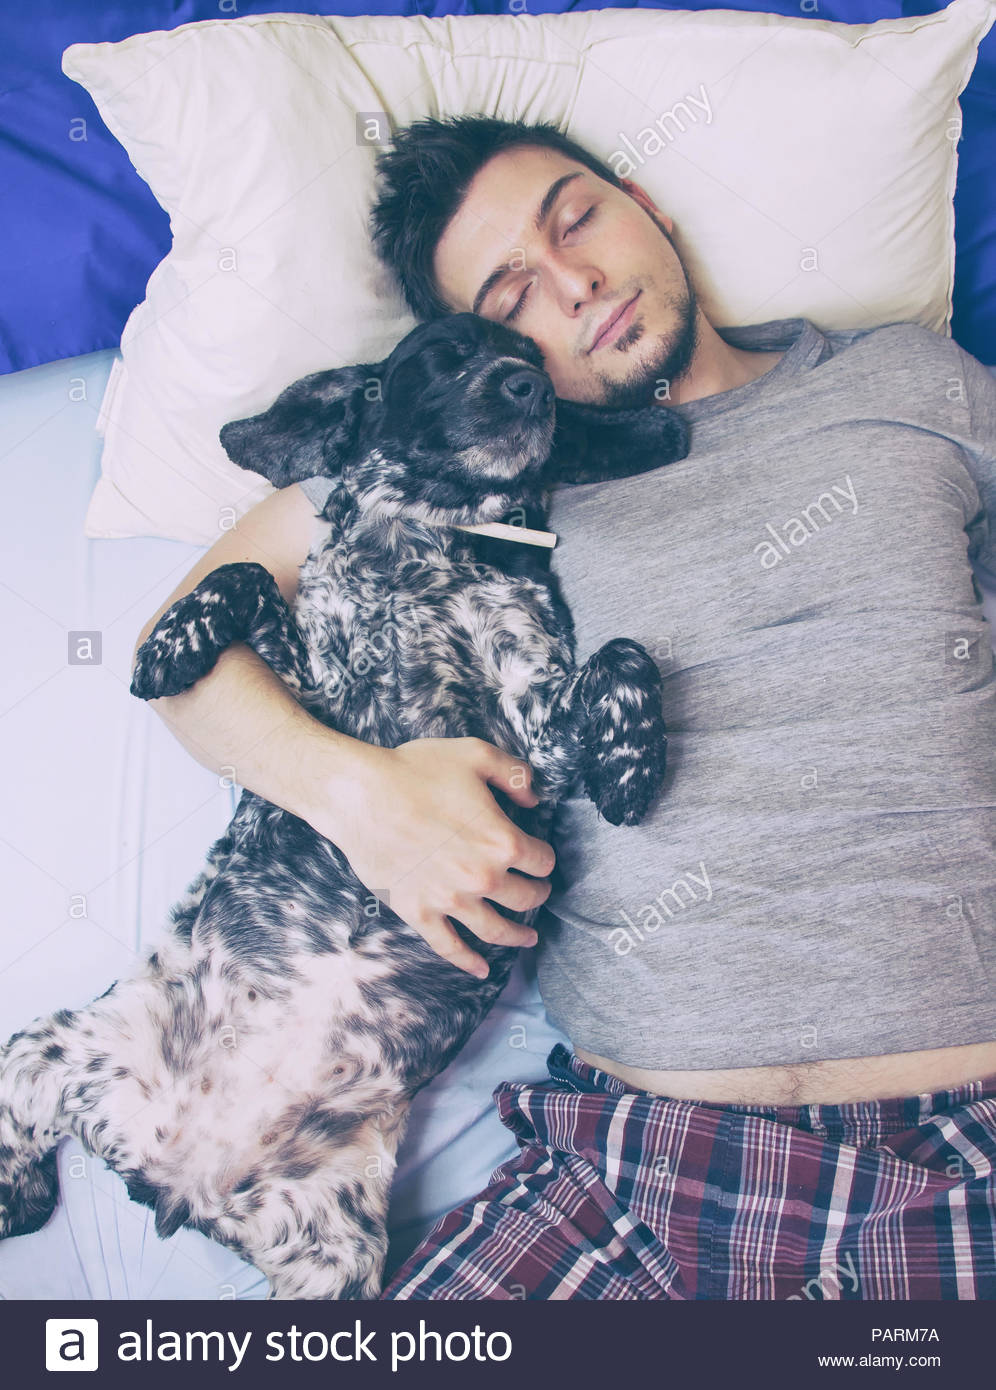 Young man lying with dog on bed - Stock Image